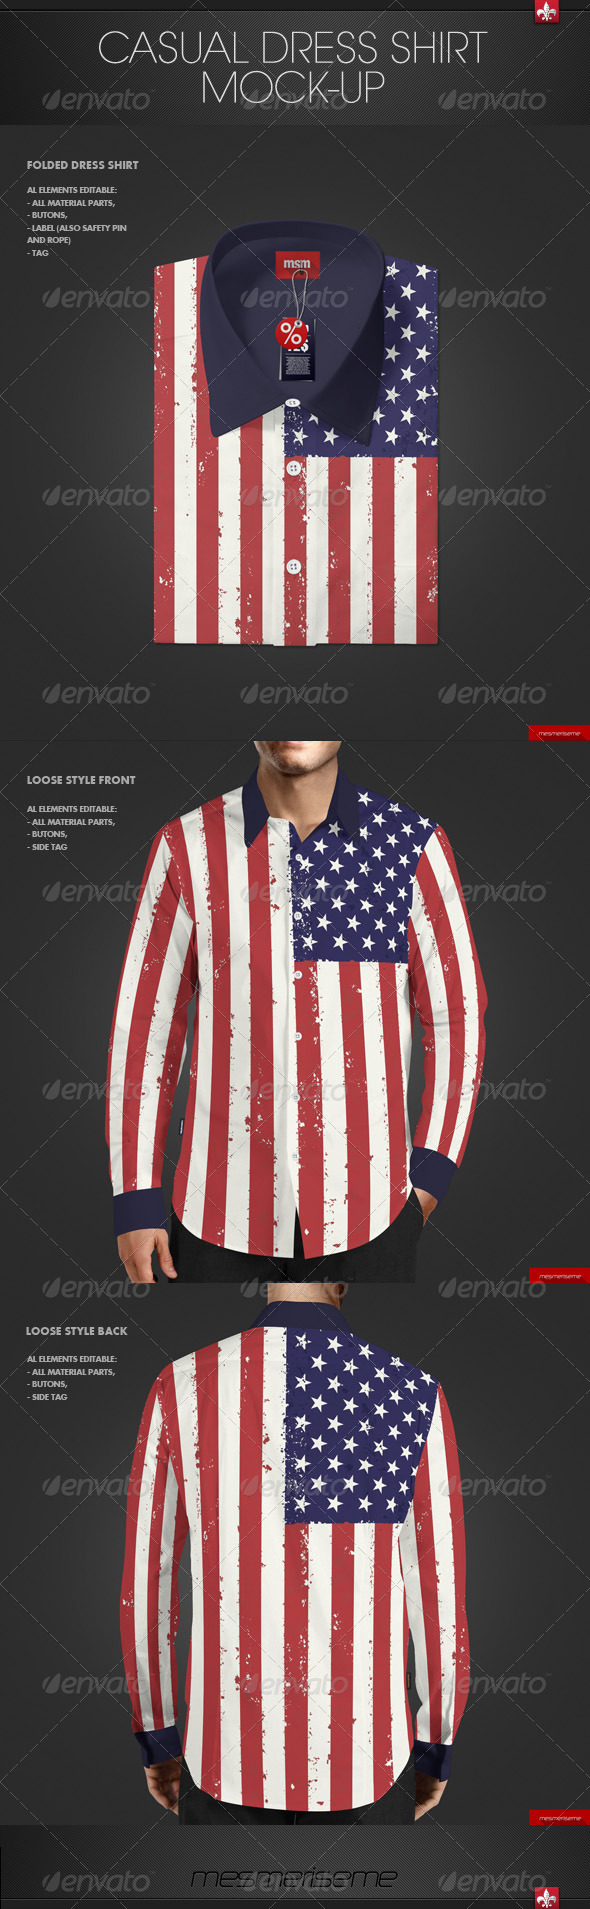 GraphicRiver Casual Dress Shirt Mock-up 7608375